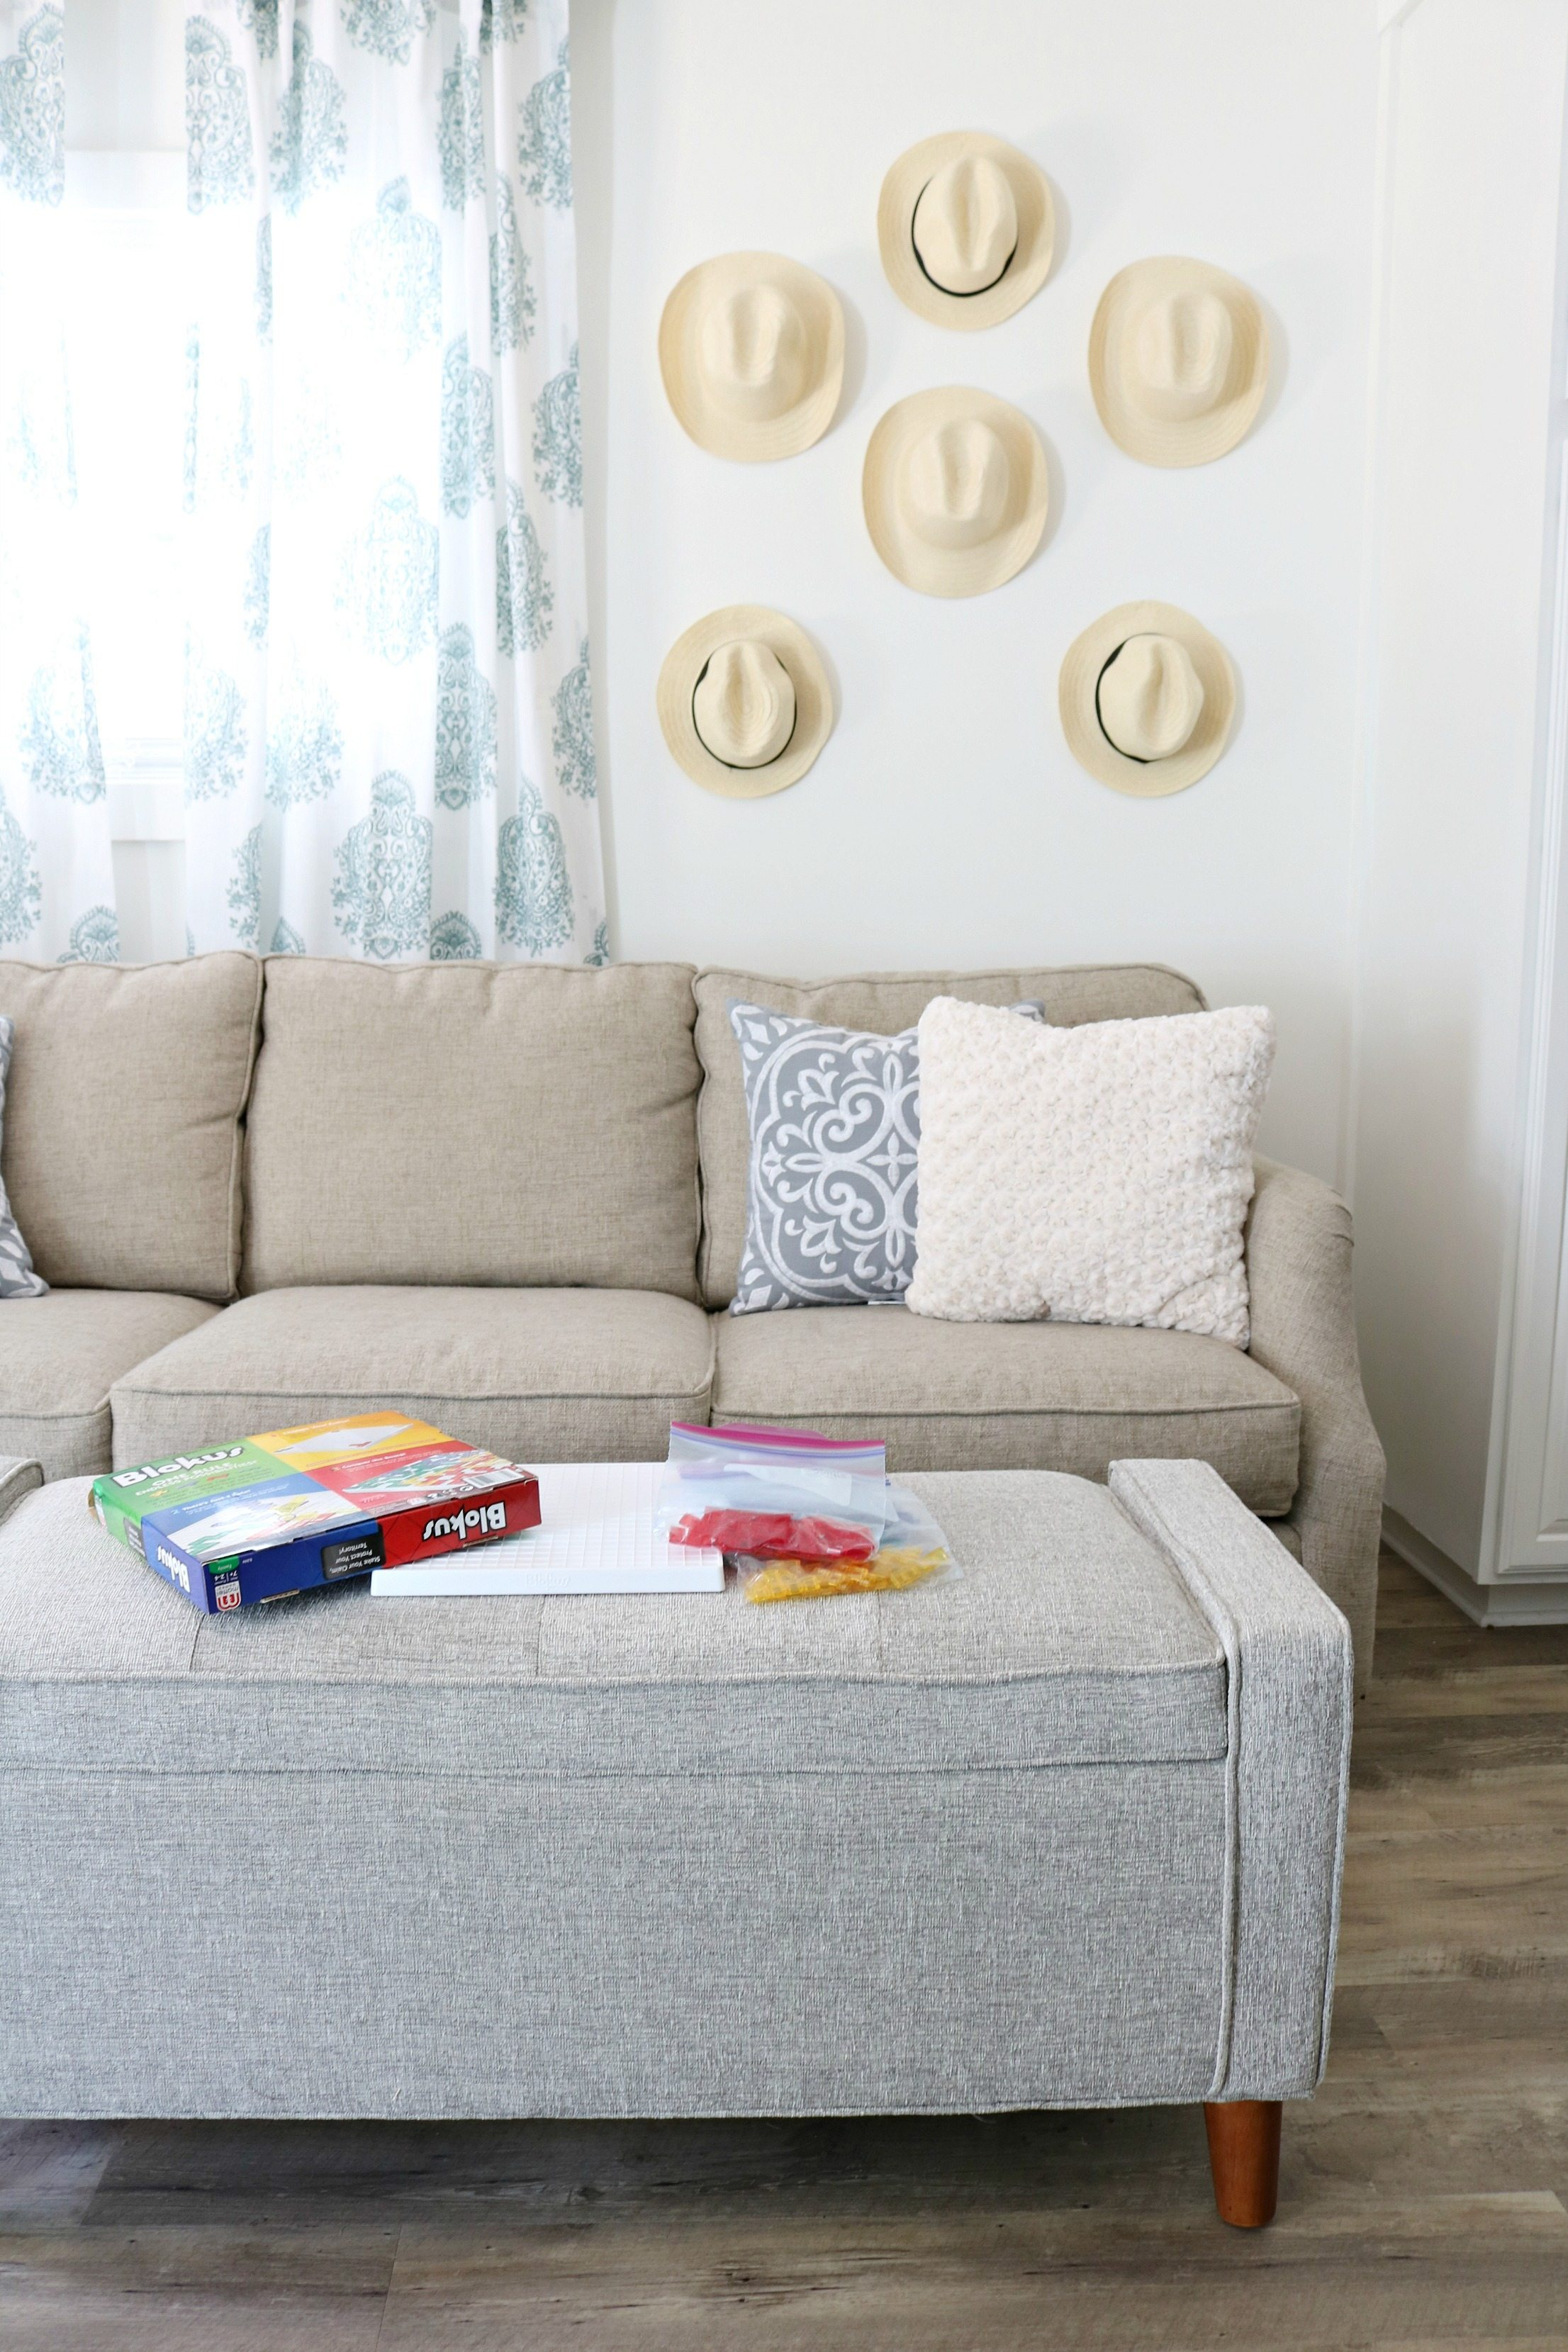 Warm grays and simple decor for a small living room